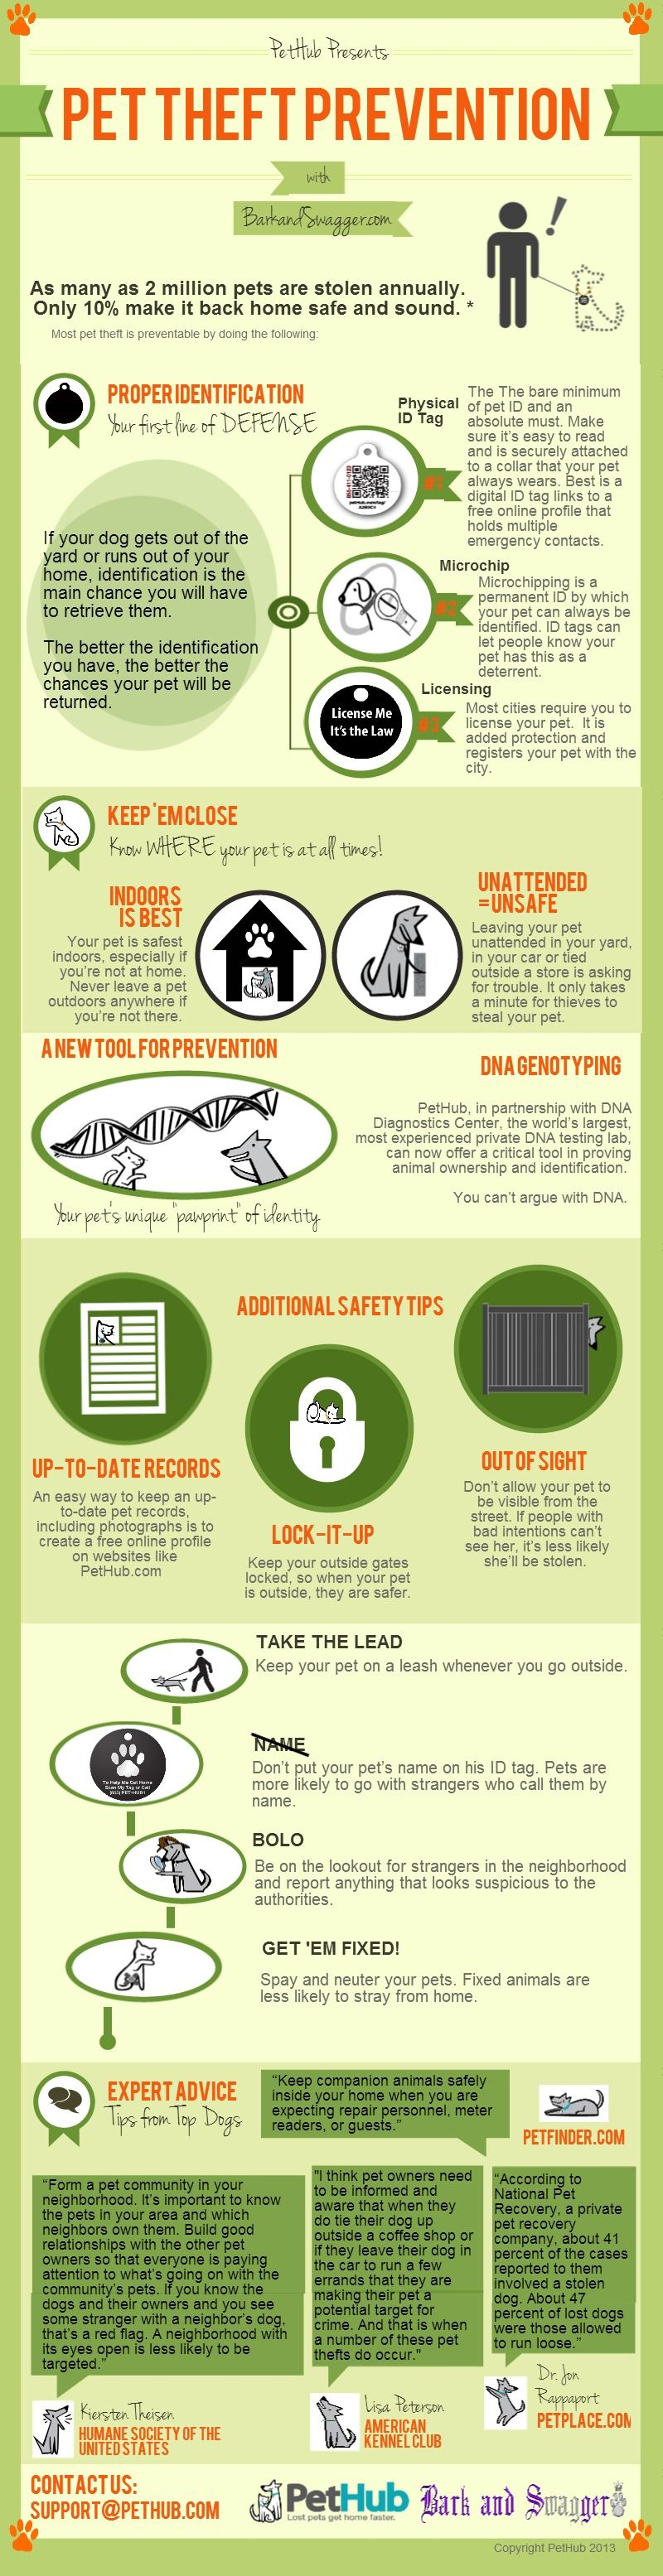 Pet Theft Prevention Tips Pets, Pet care tips, Dog safety